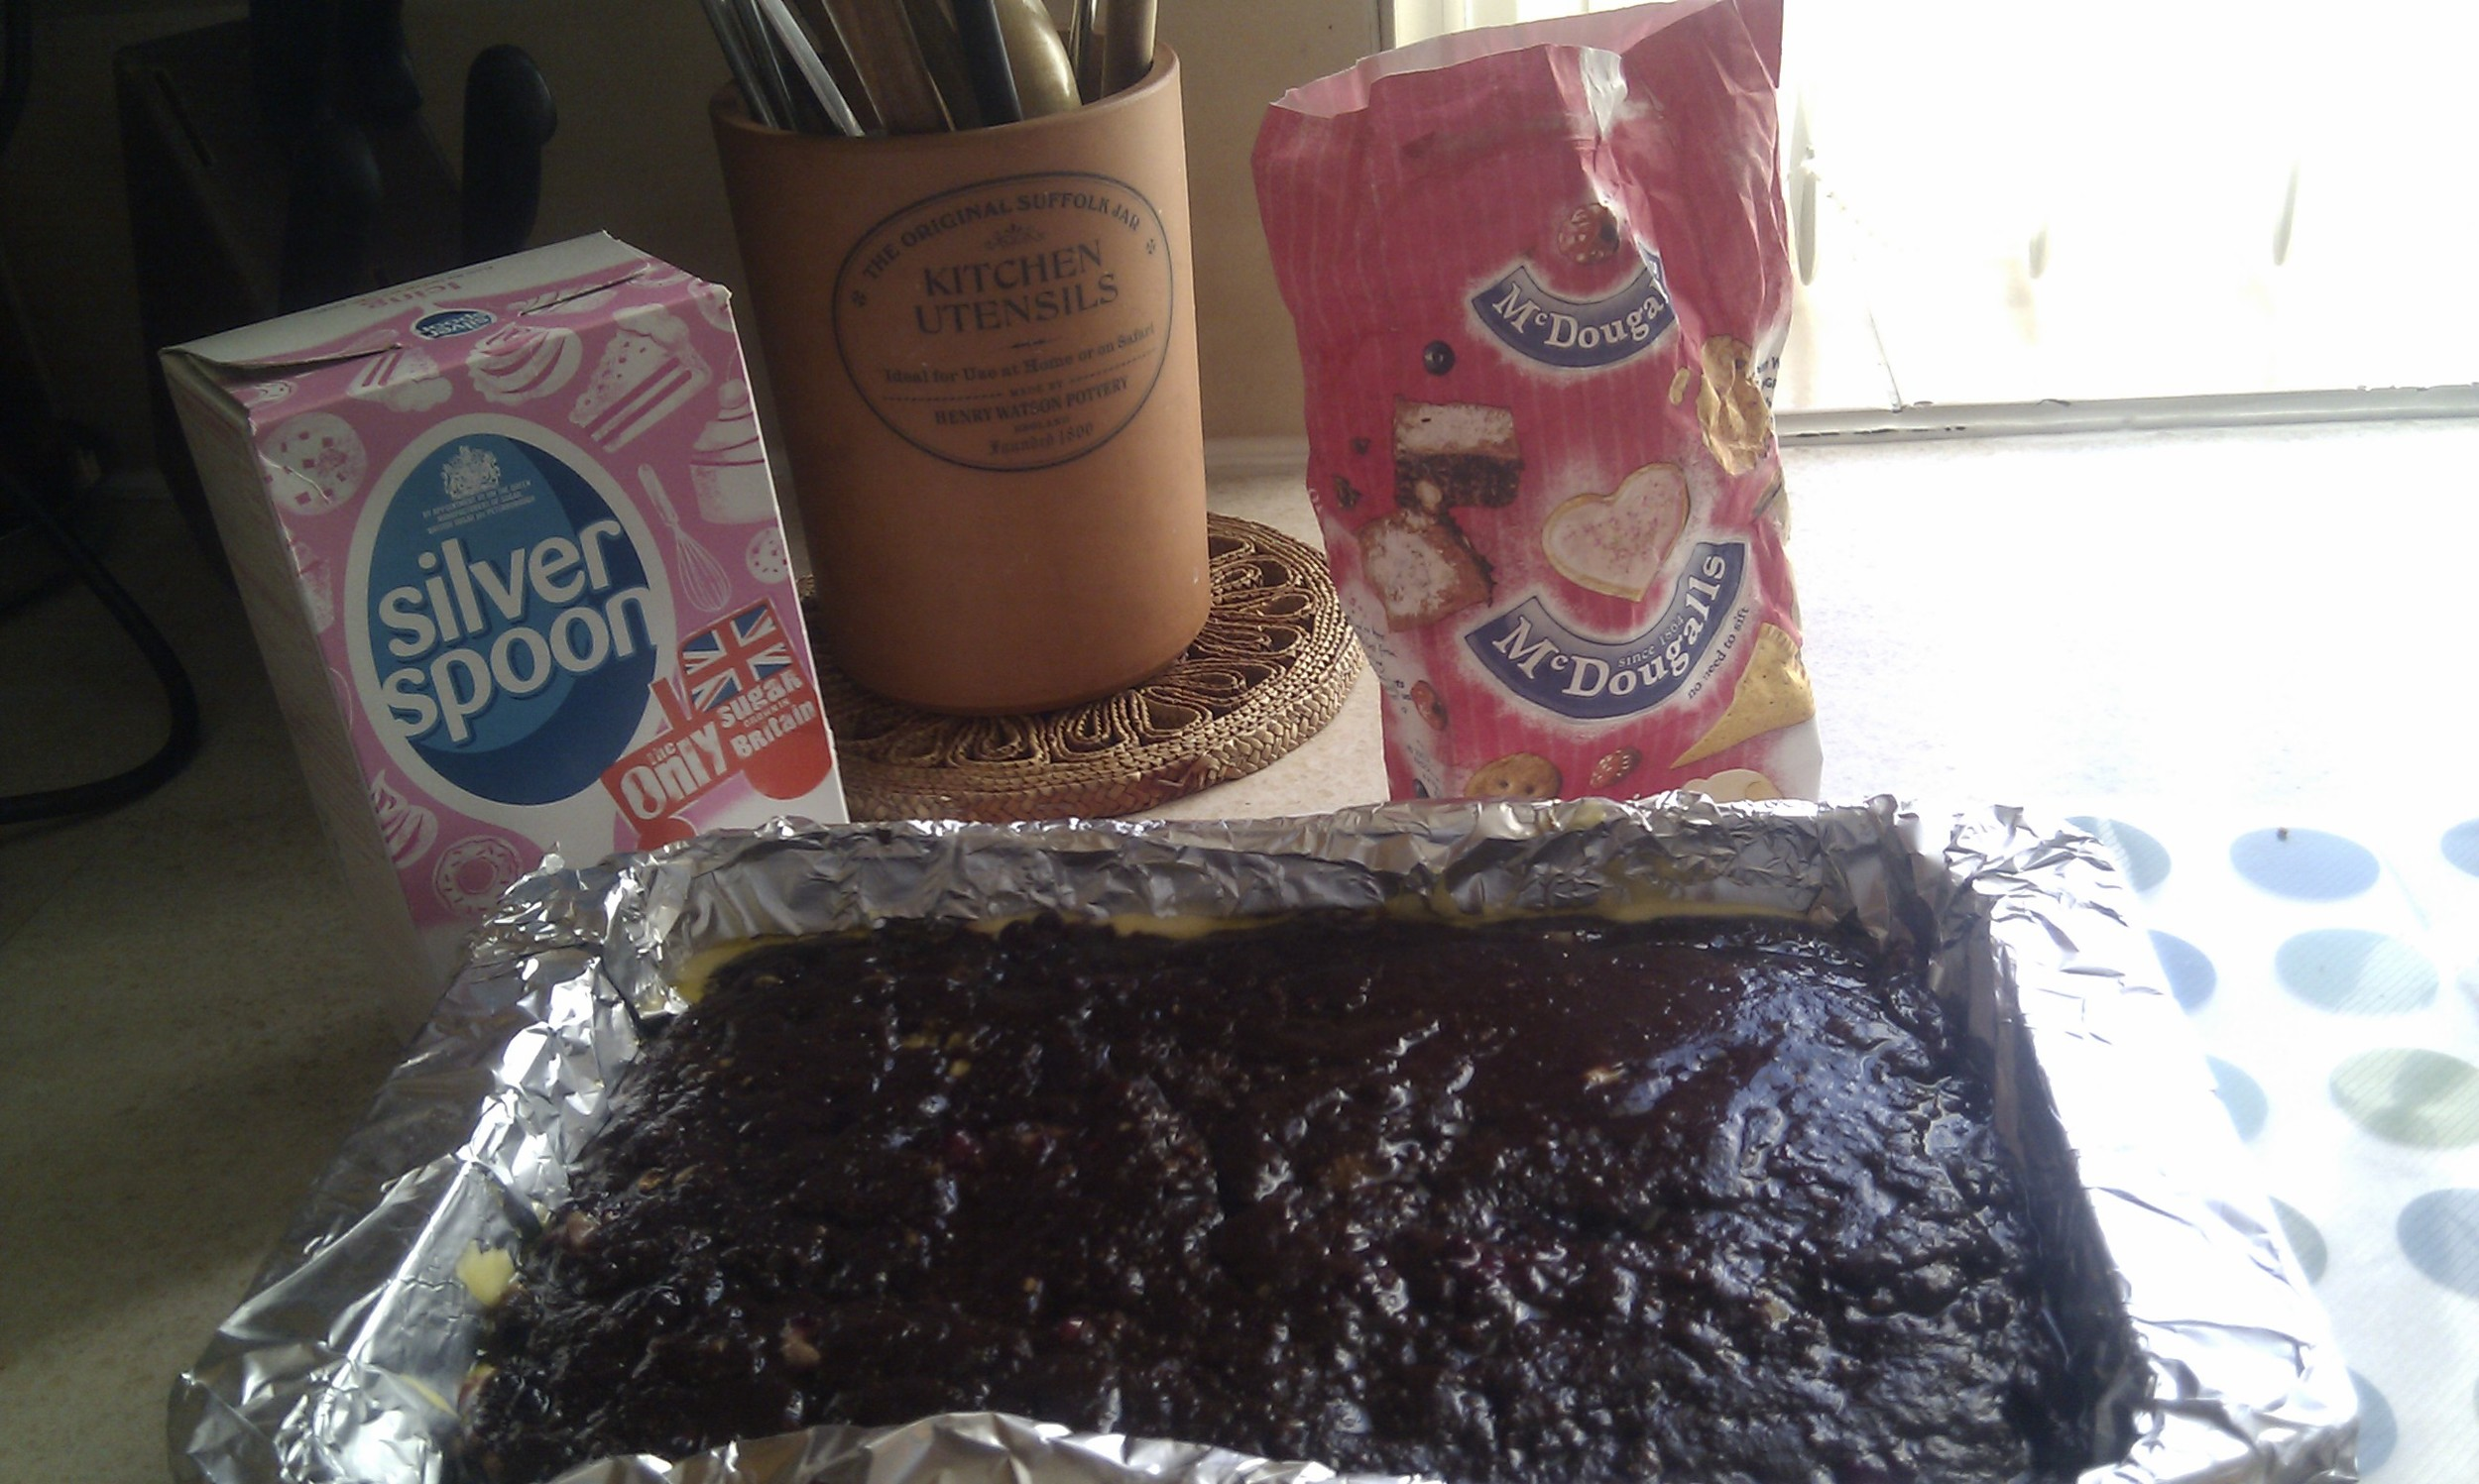 Chocolate ginger brownies with blueberries bits read for the oven. The kitchen was not always this tidy